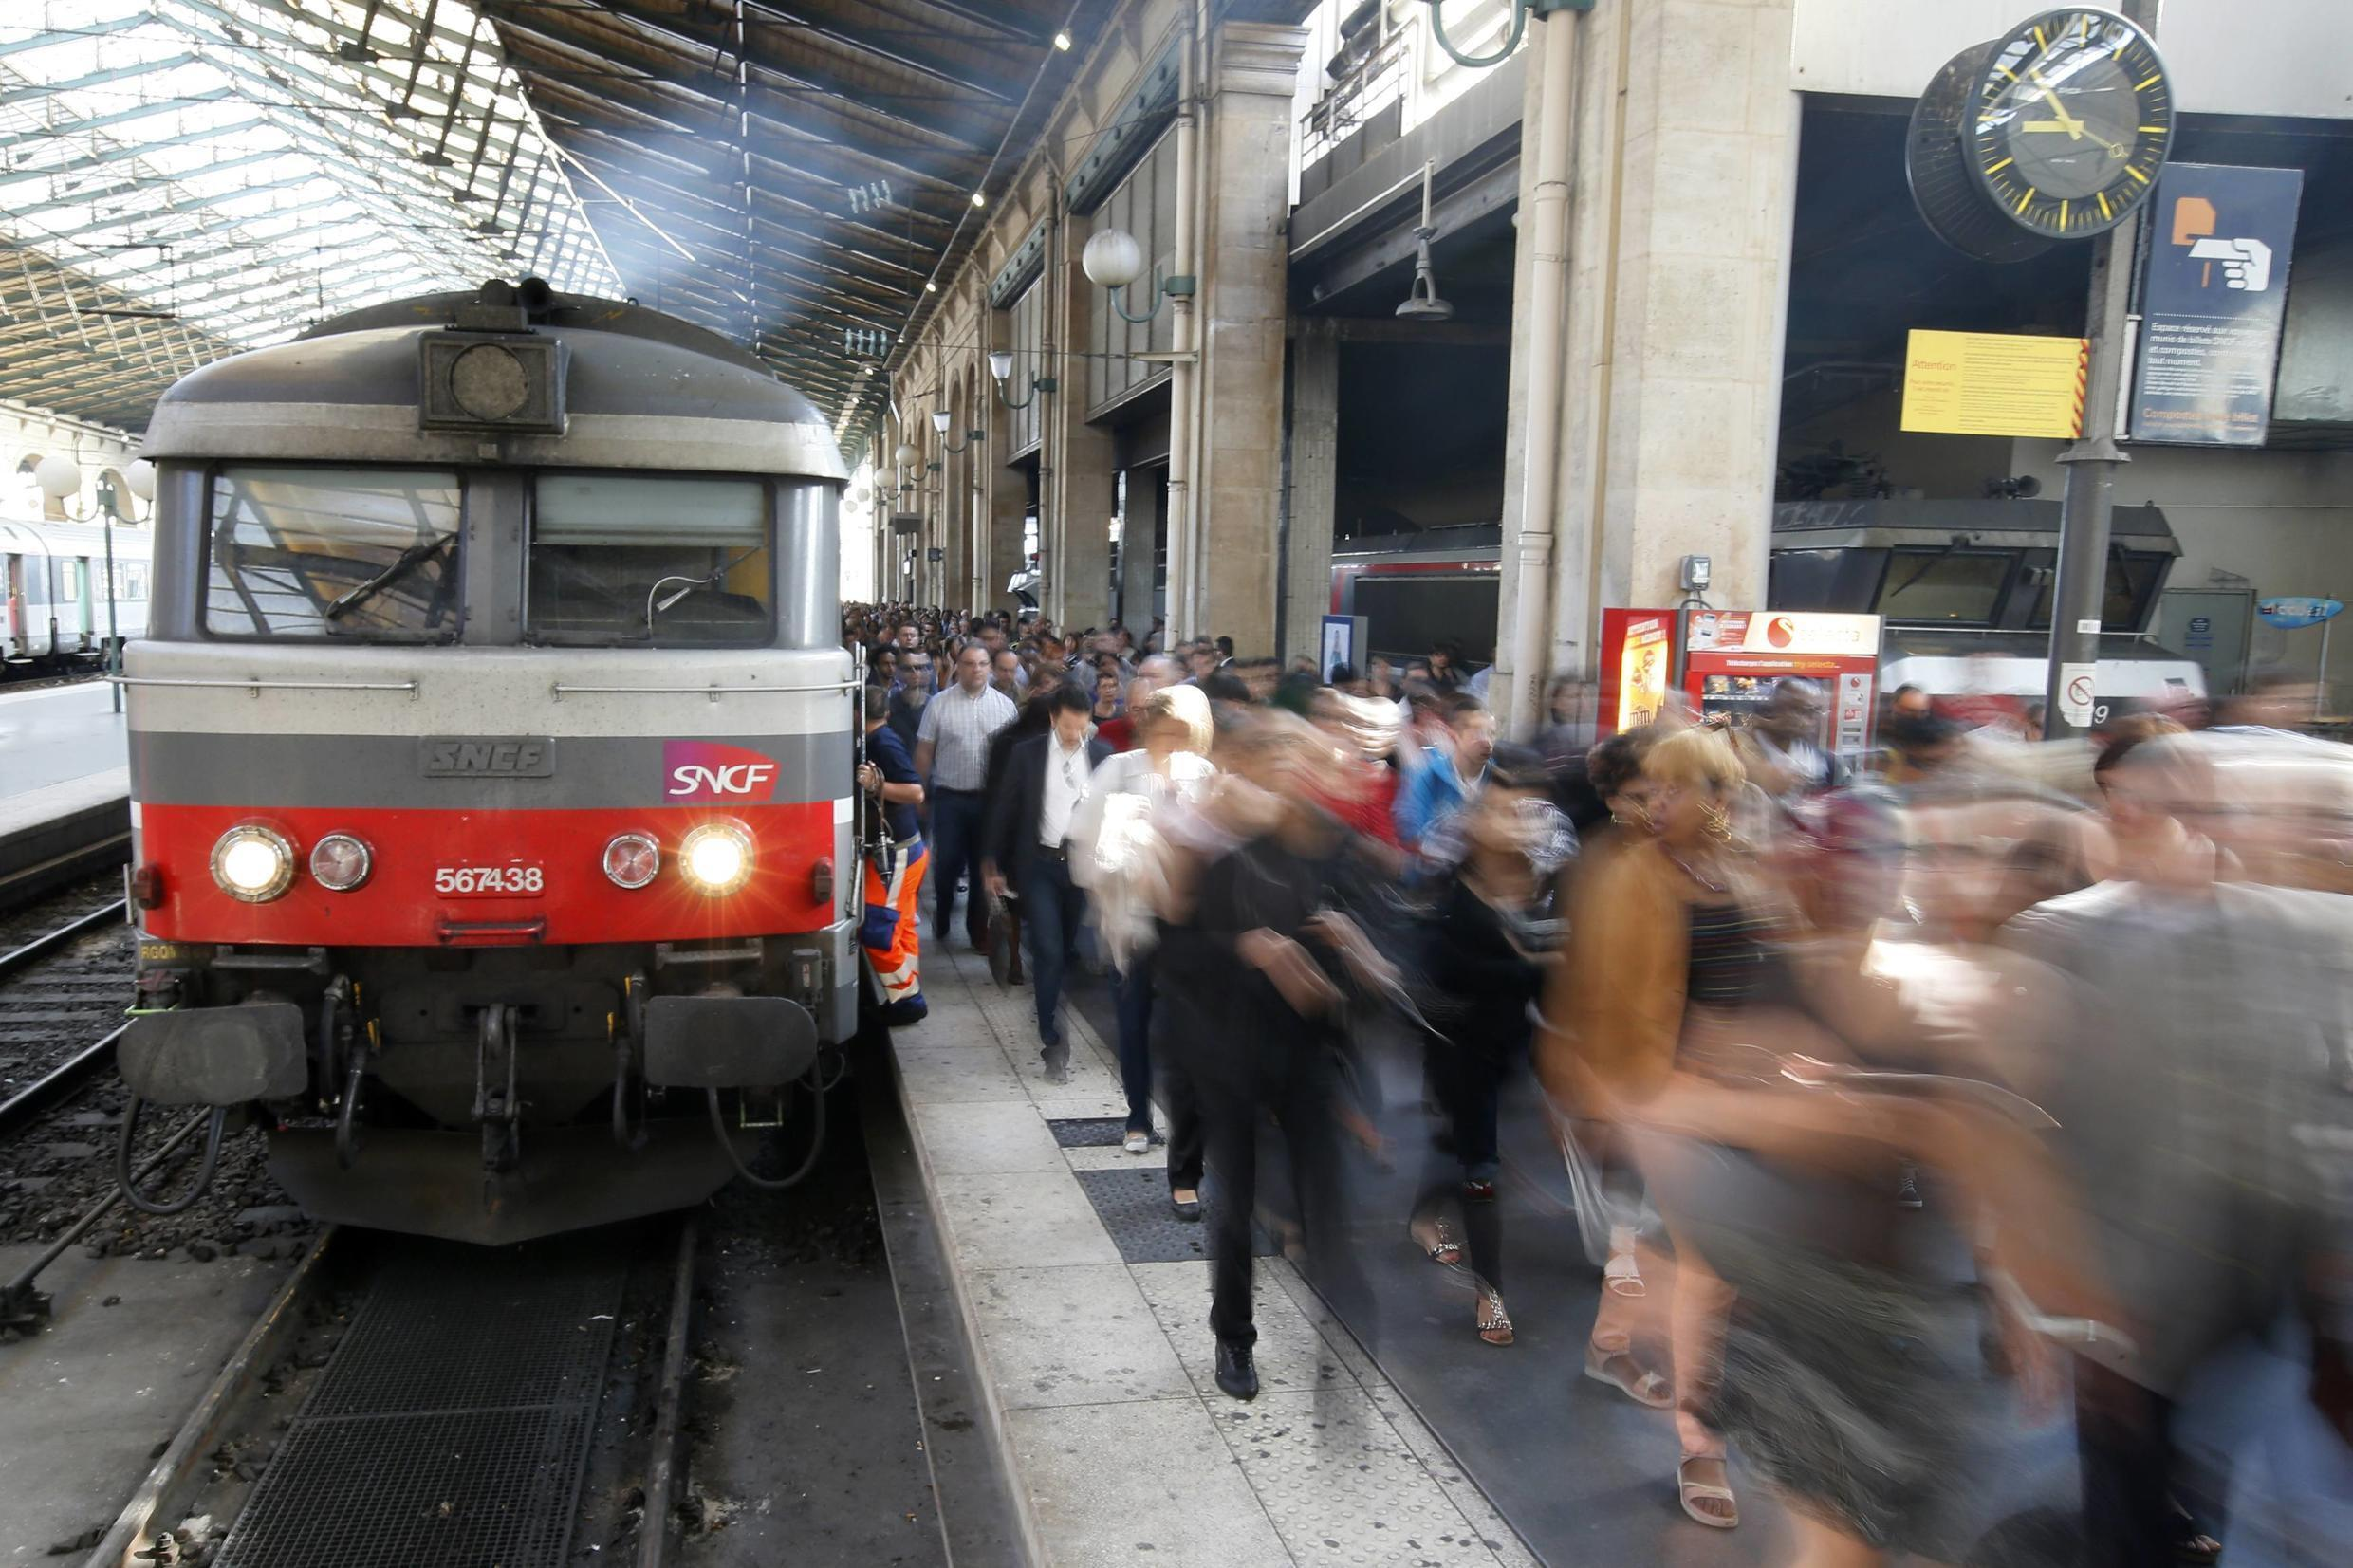 The French labour court found the SNCF guilty on Monday of discriminating against Moroccan rail workers.